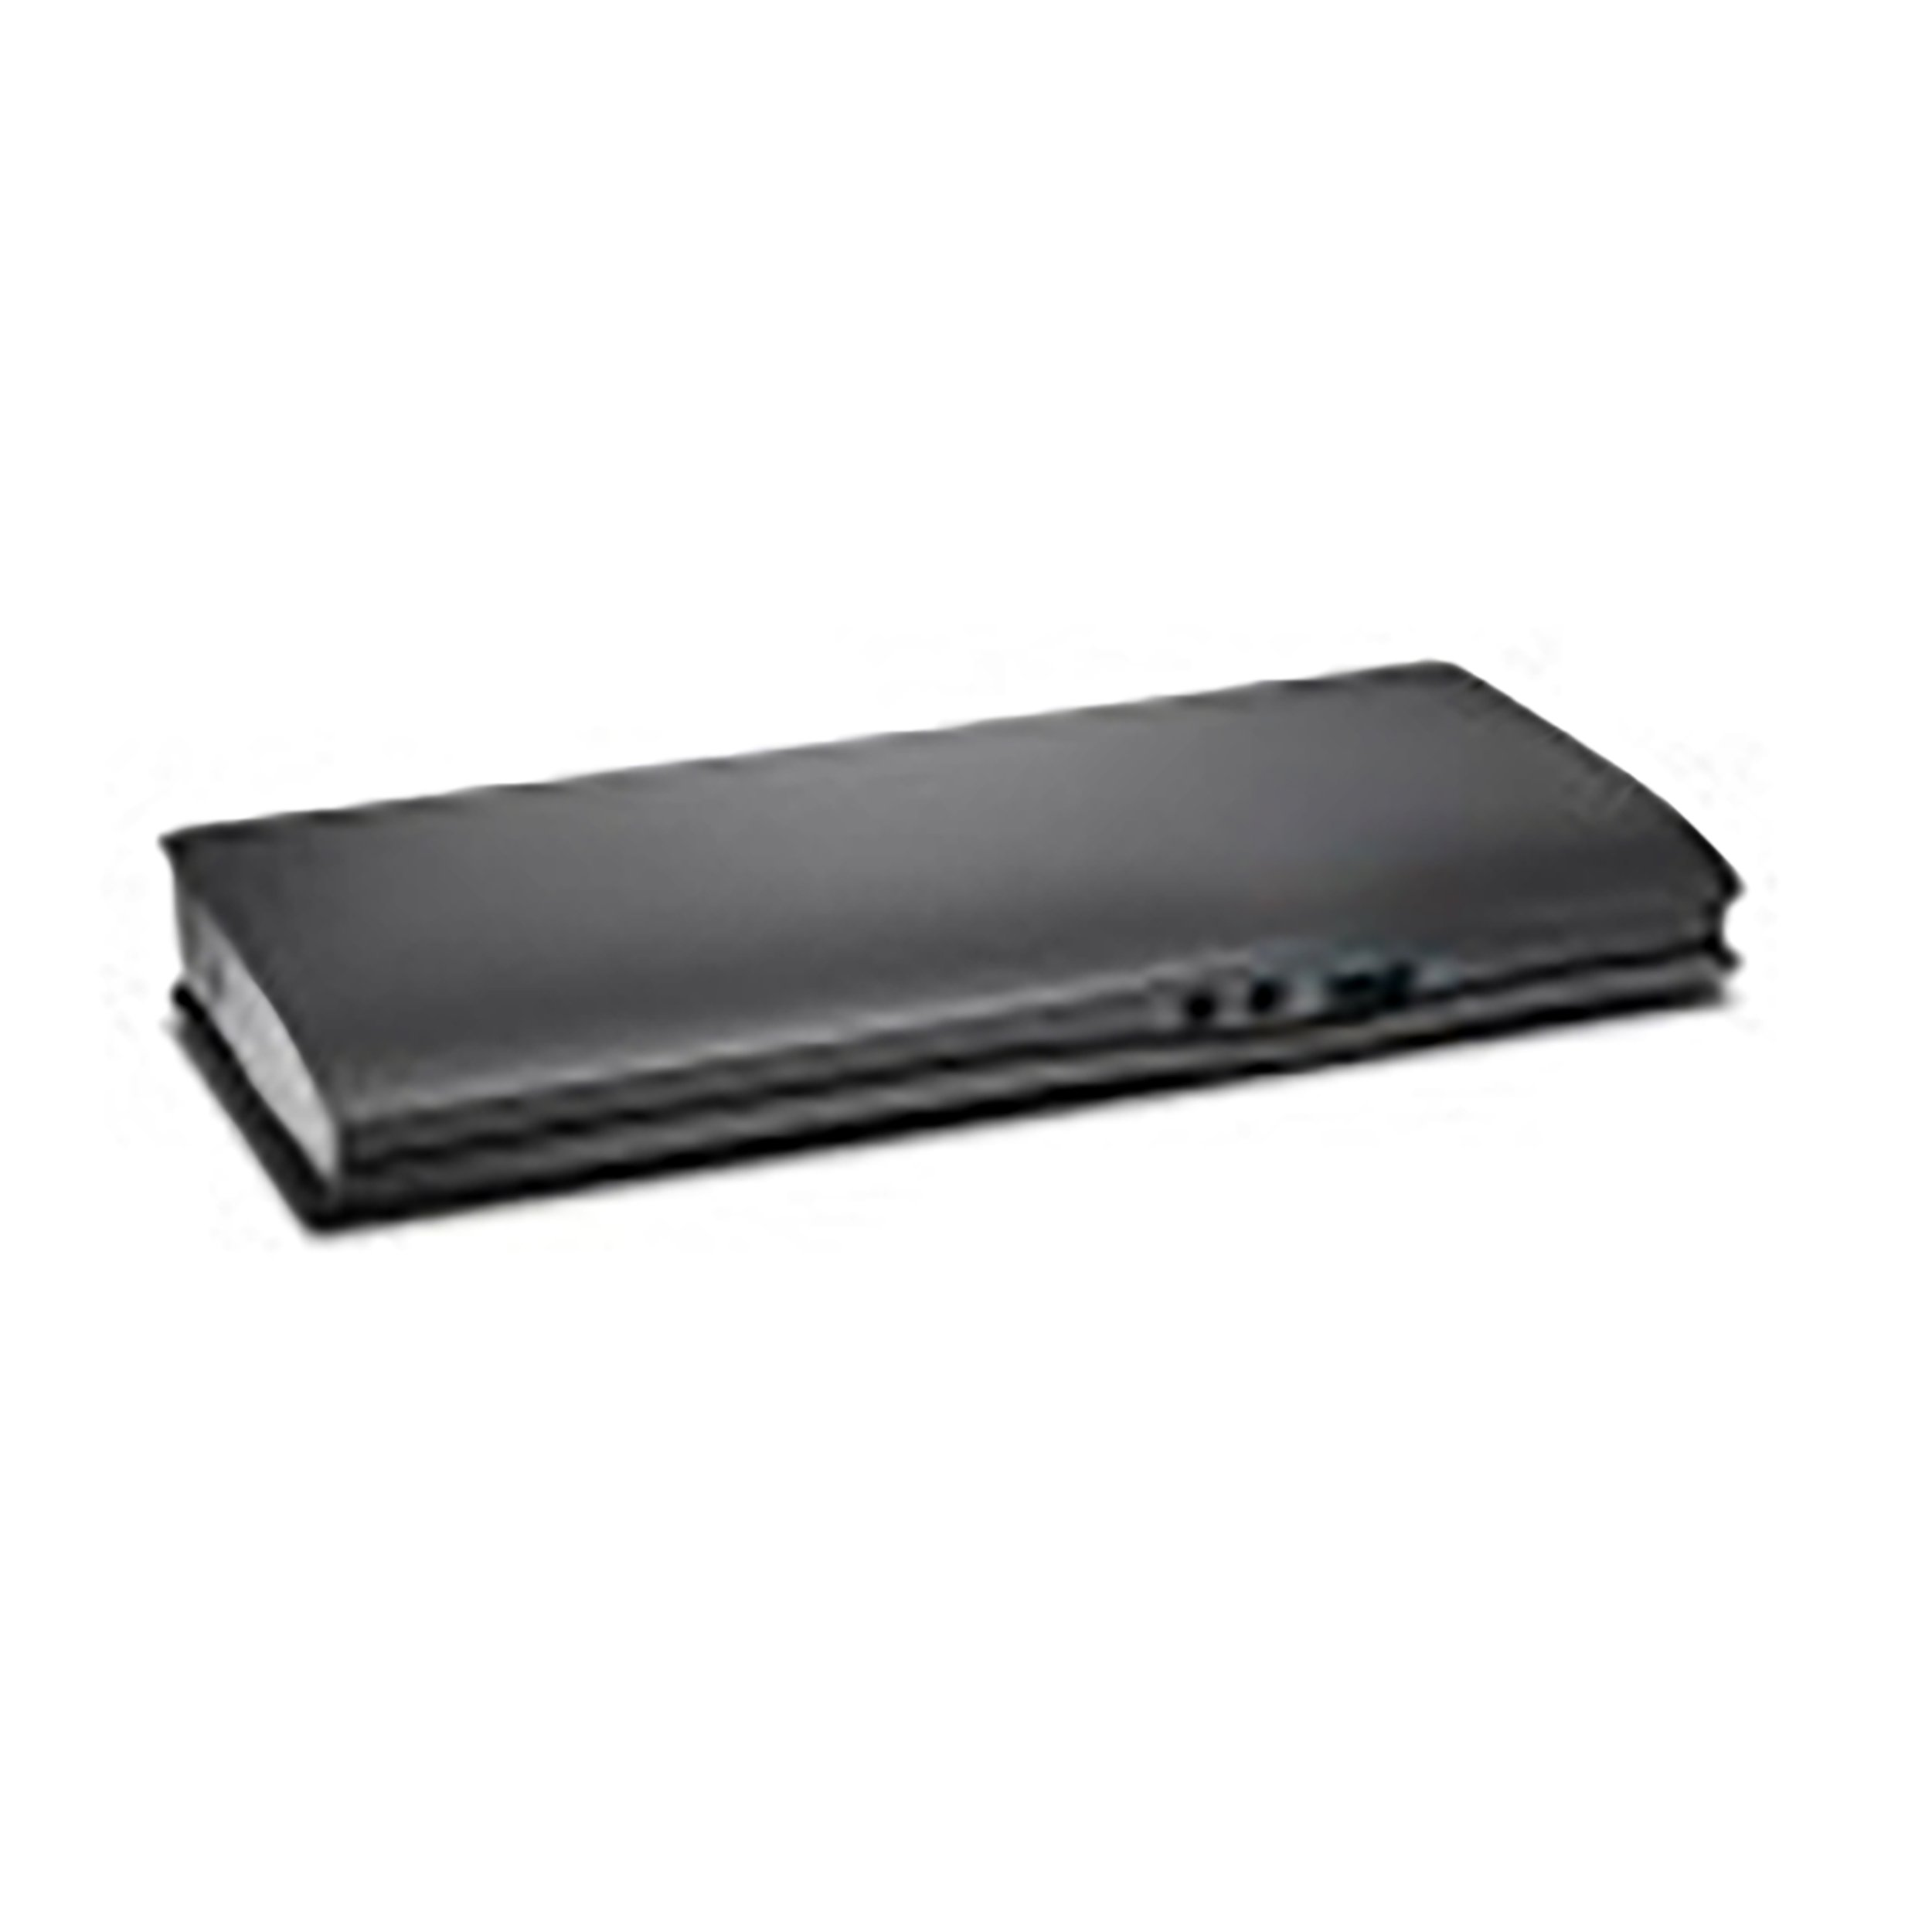 "Kensington SD4600P USB-C Docking Station with Power Delivery Charging for 2015/2016 MacBook Retina 12"", Chromebook Pixel, Dell XPS 13"" 9350/XPS 15"" 9550, Dell Precision 5510 (K38231WW)"